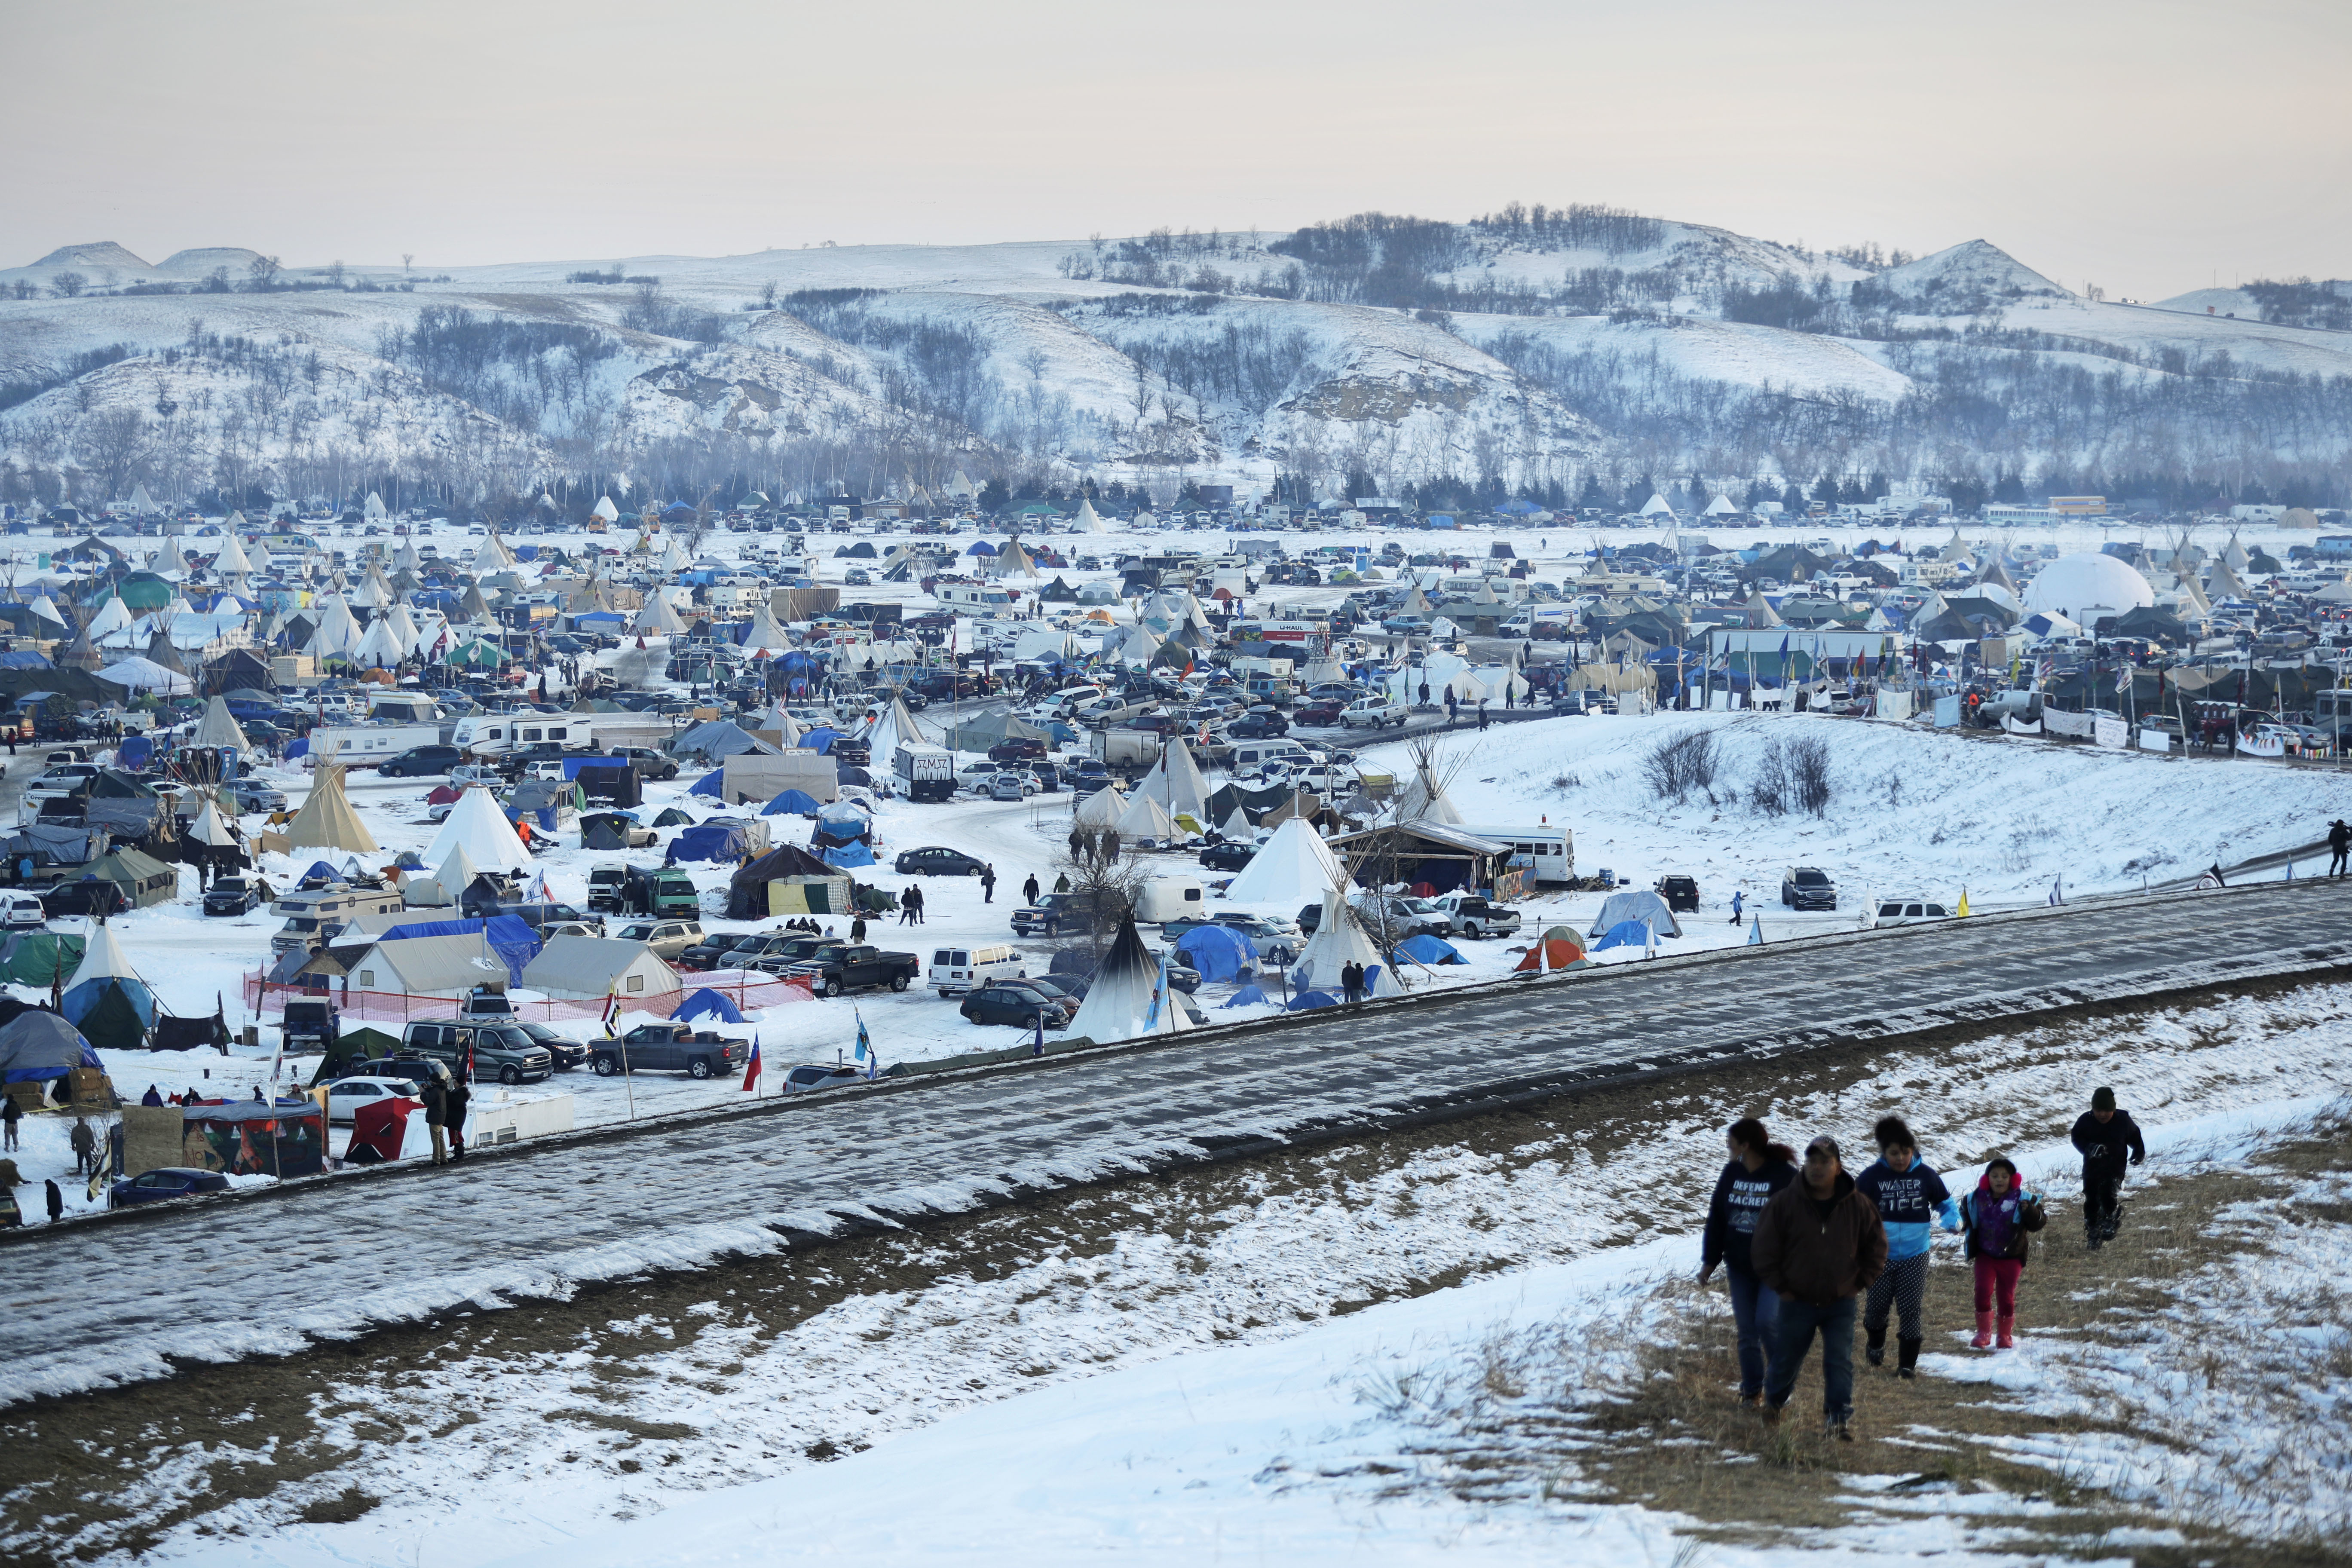 In Victory For Protesters, Army Halts Construction Of Dakota Pipeline